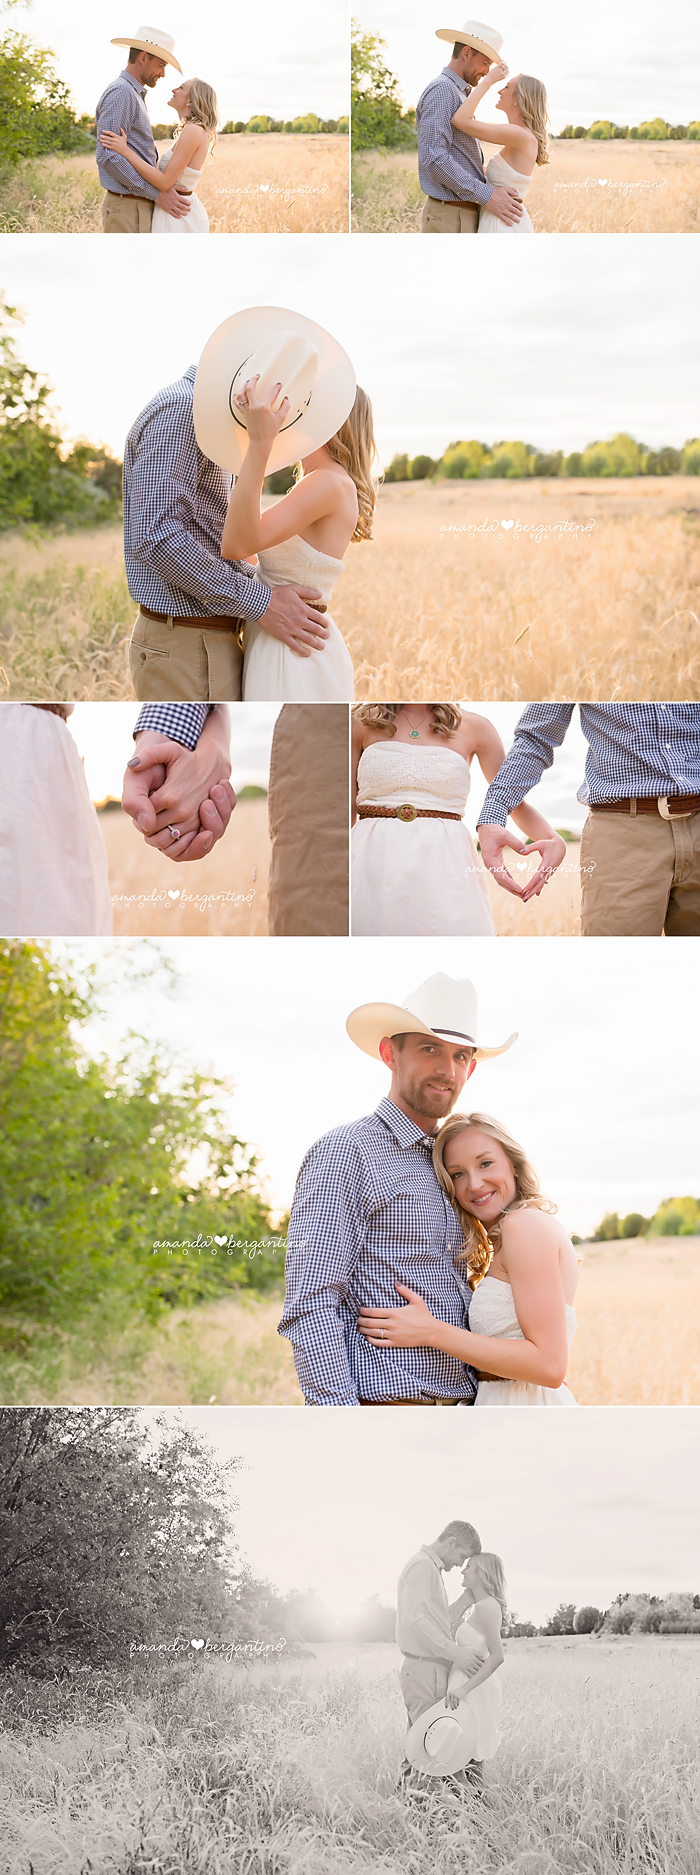 sale retailer d598a 234b3 Tri-Cities, WA Engagement Photographer